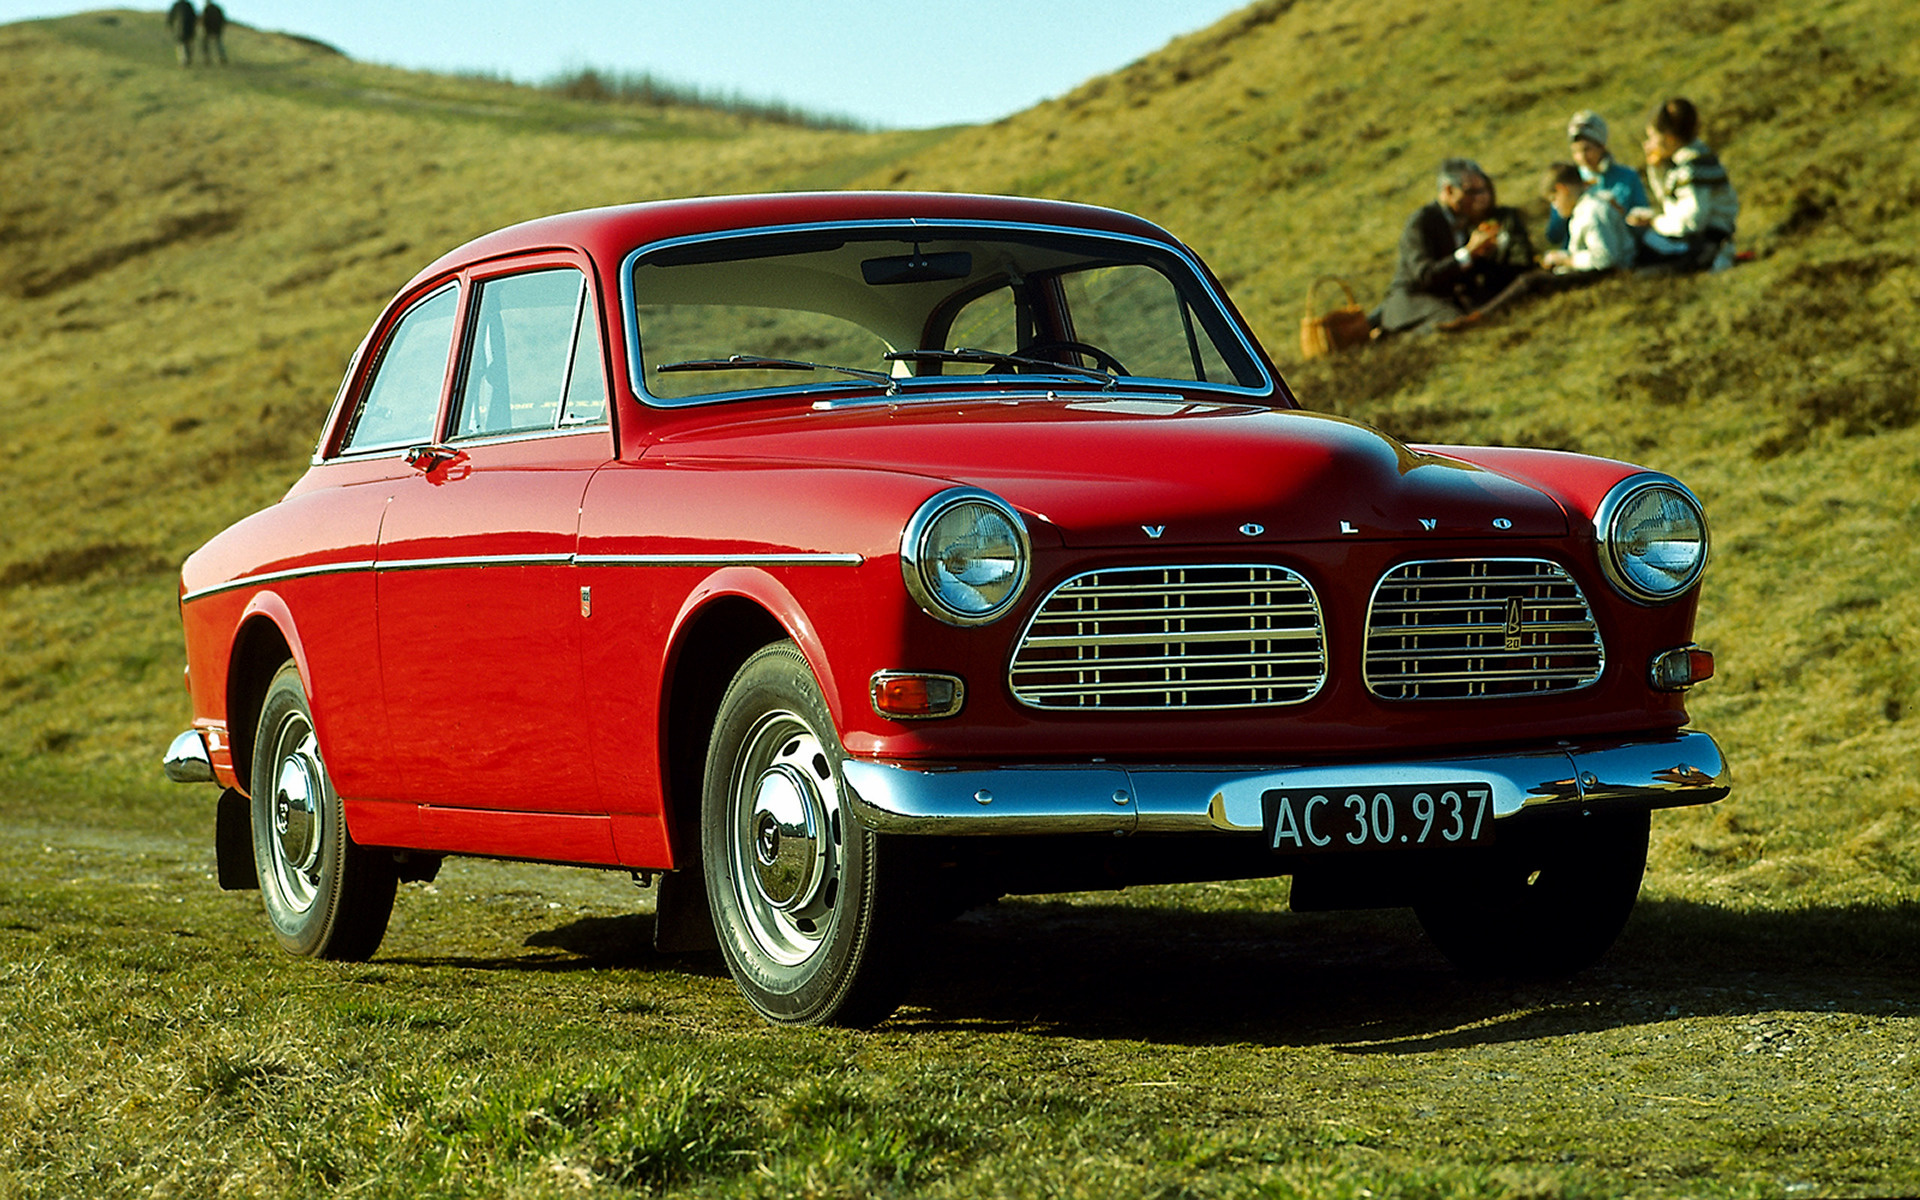 1962 Volvo 122 S - Wallpapers and HD Images | Car Pixel